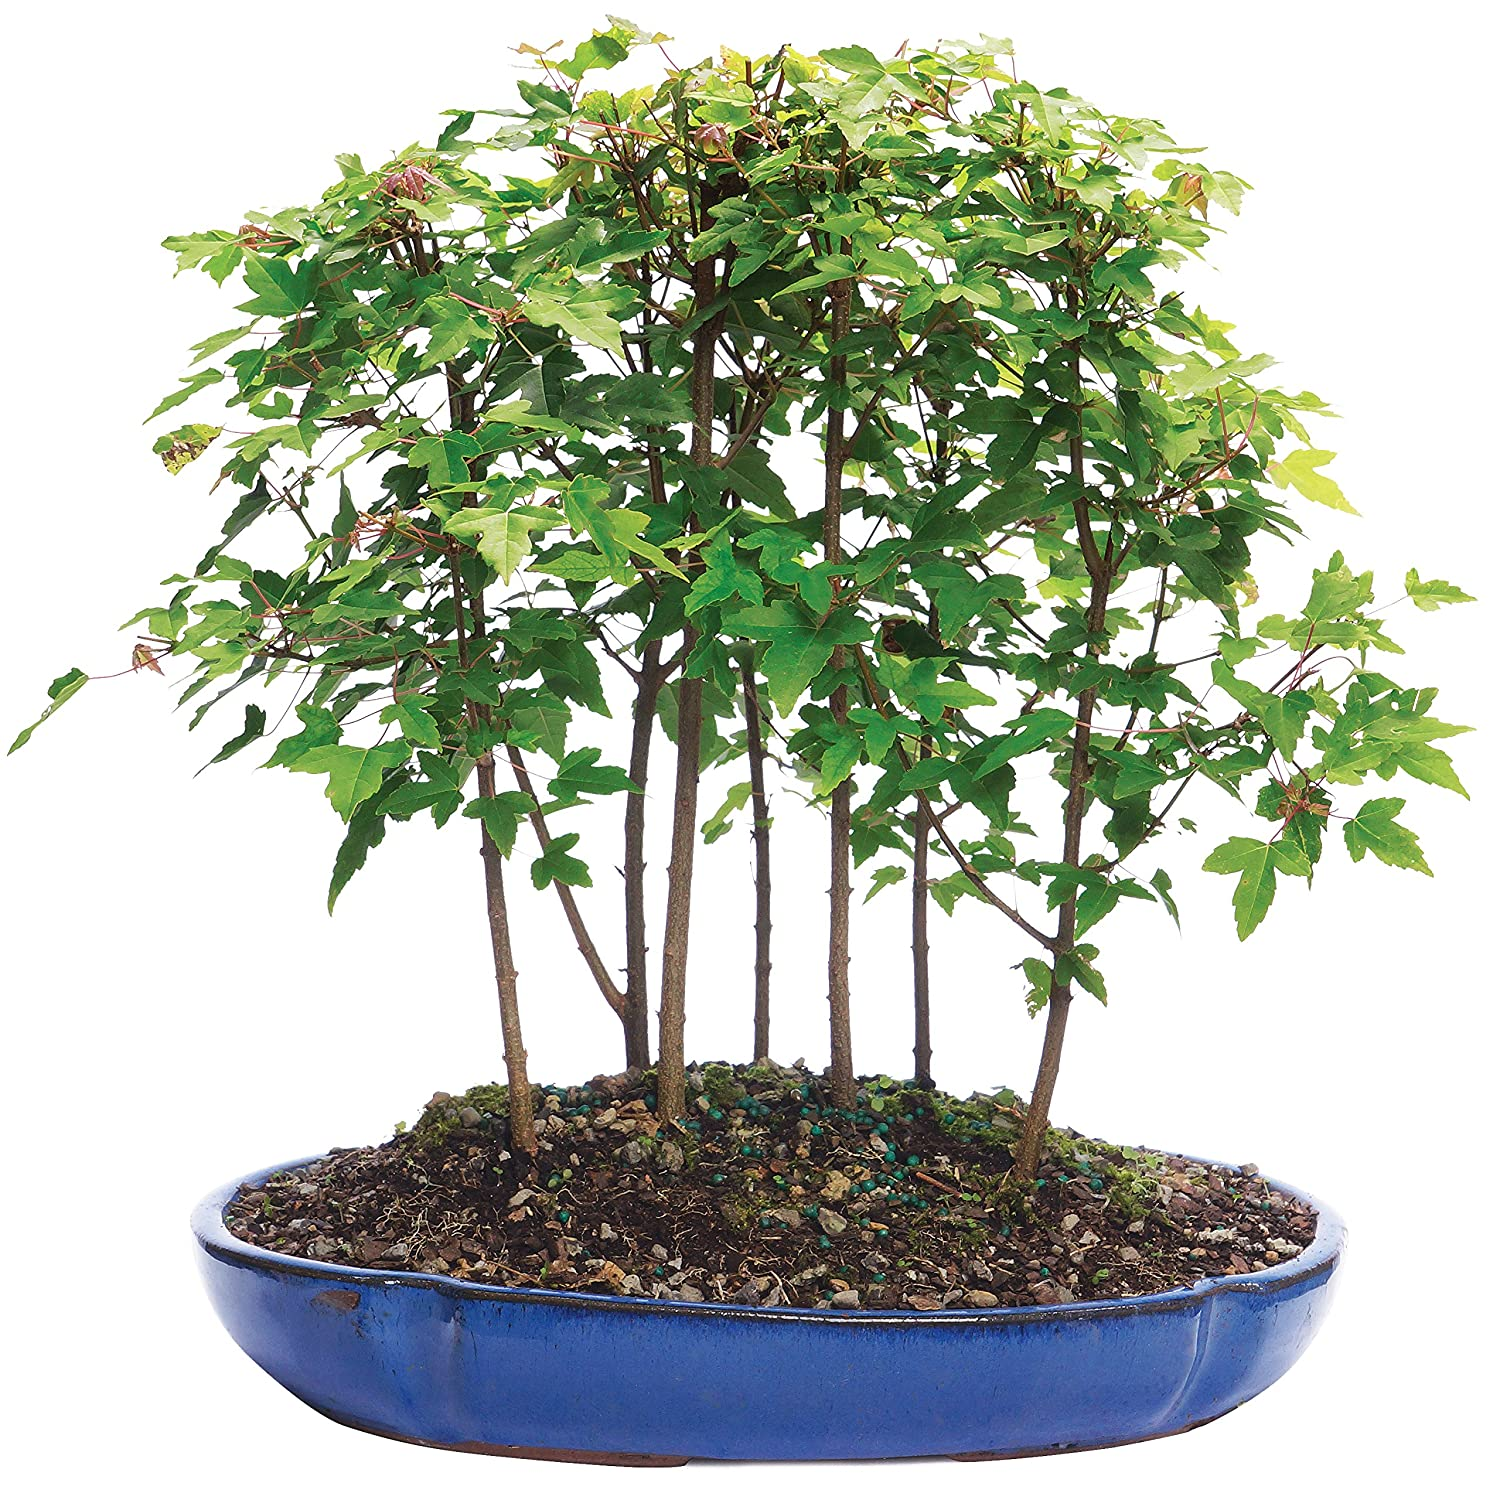 Brussels Live Trident Maple Forest 7 Tree Outdoor Wiring Bonsai 3 Years Old 8 To 14 Tall With Decorative Container Garden